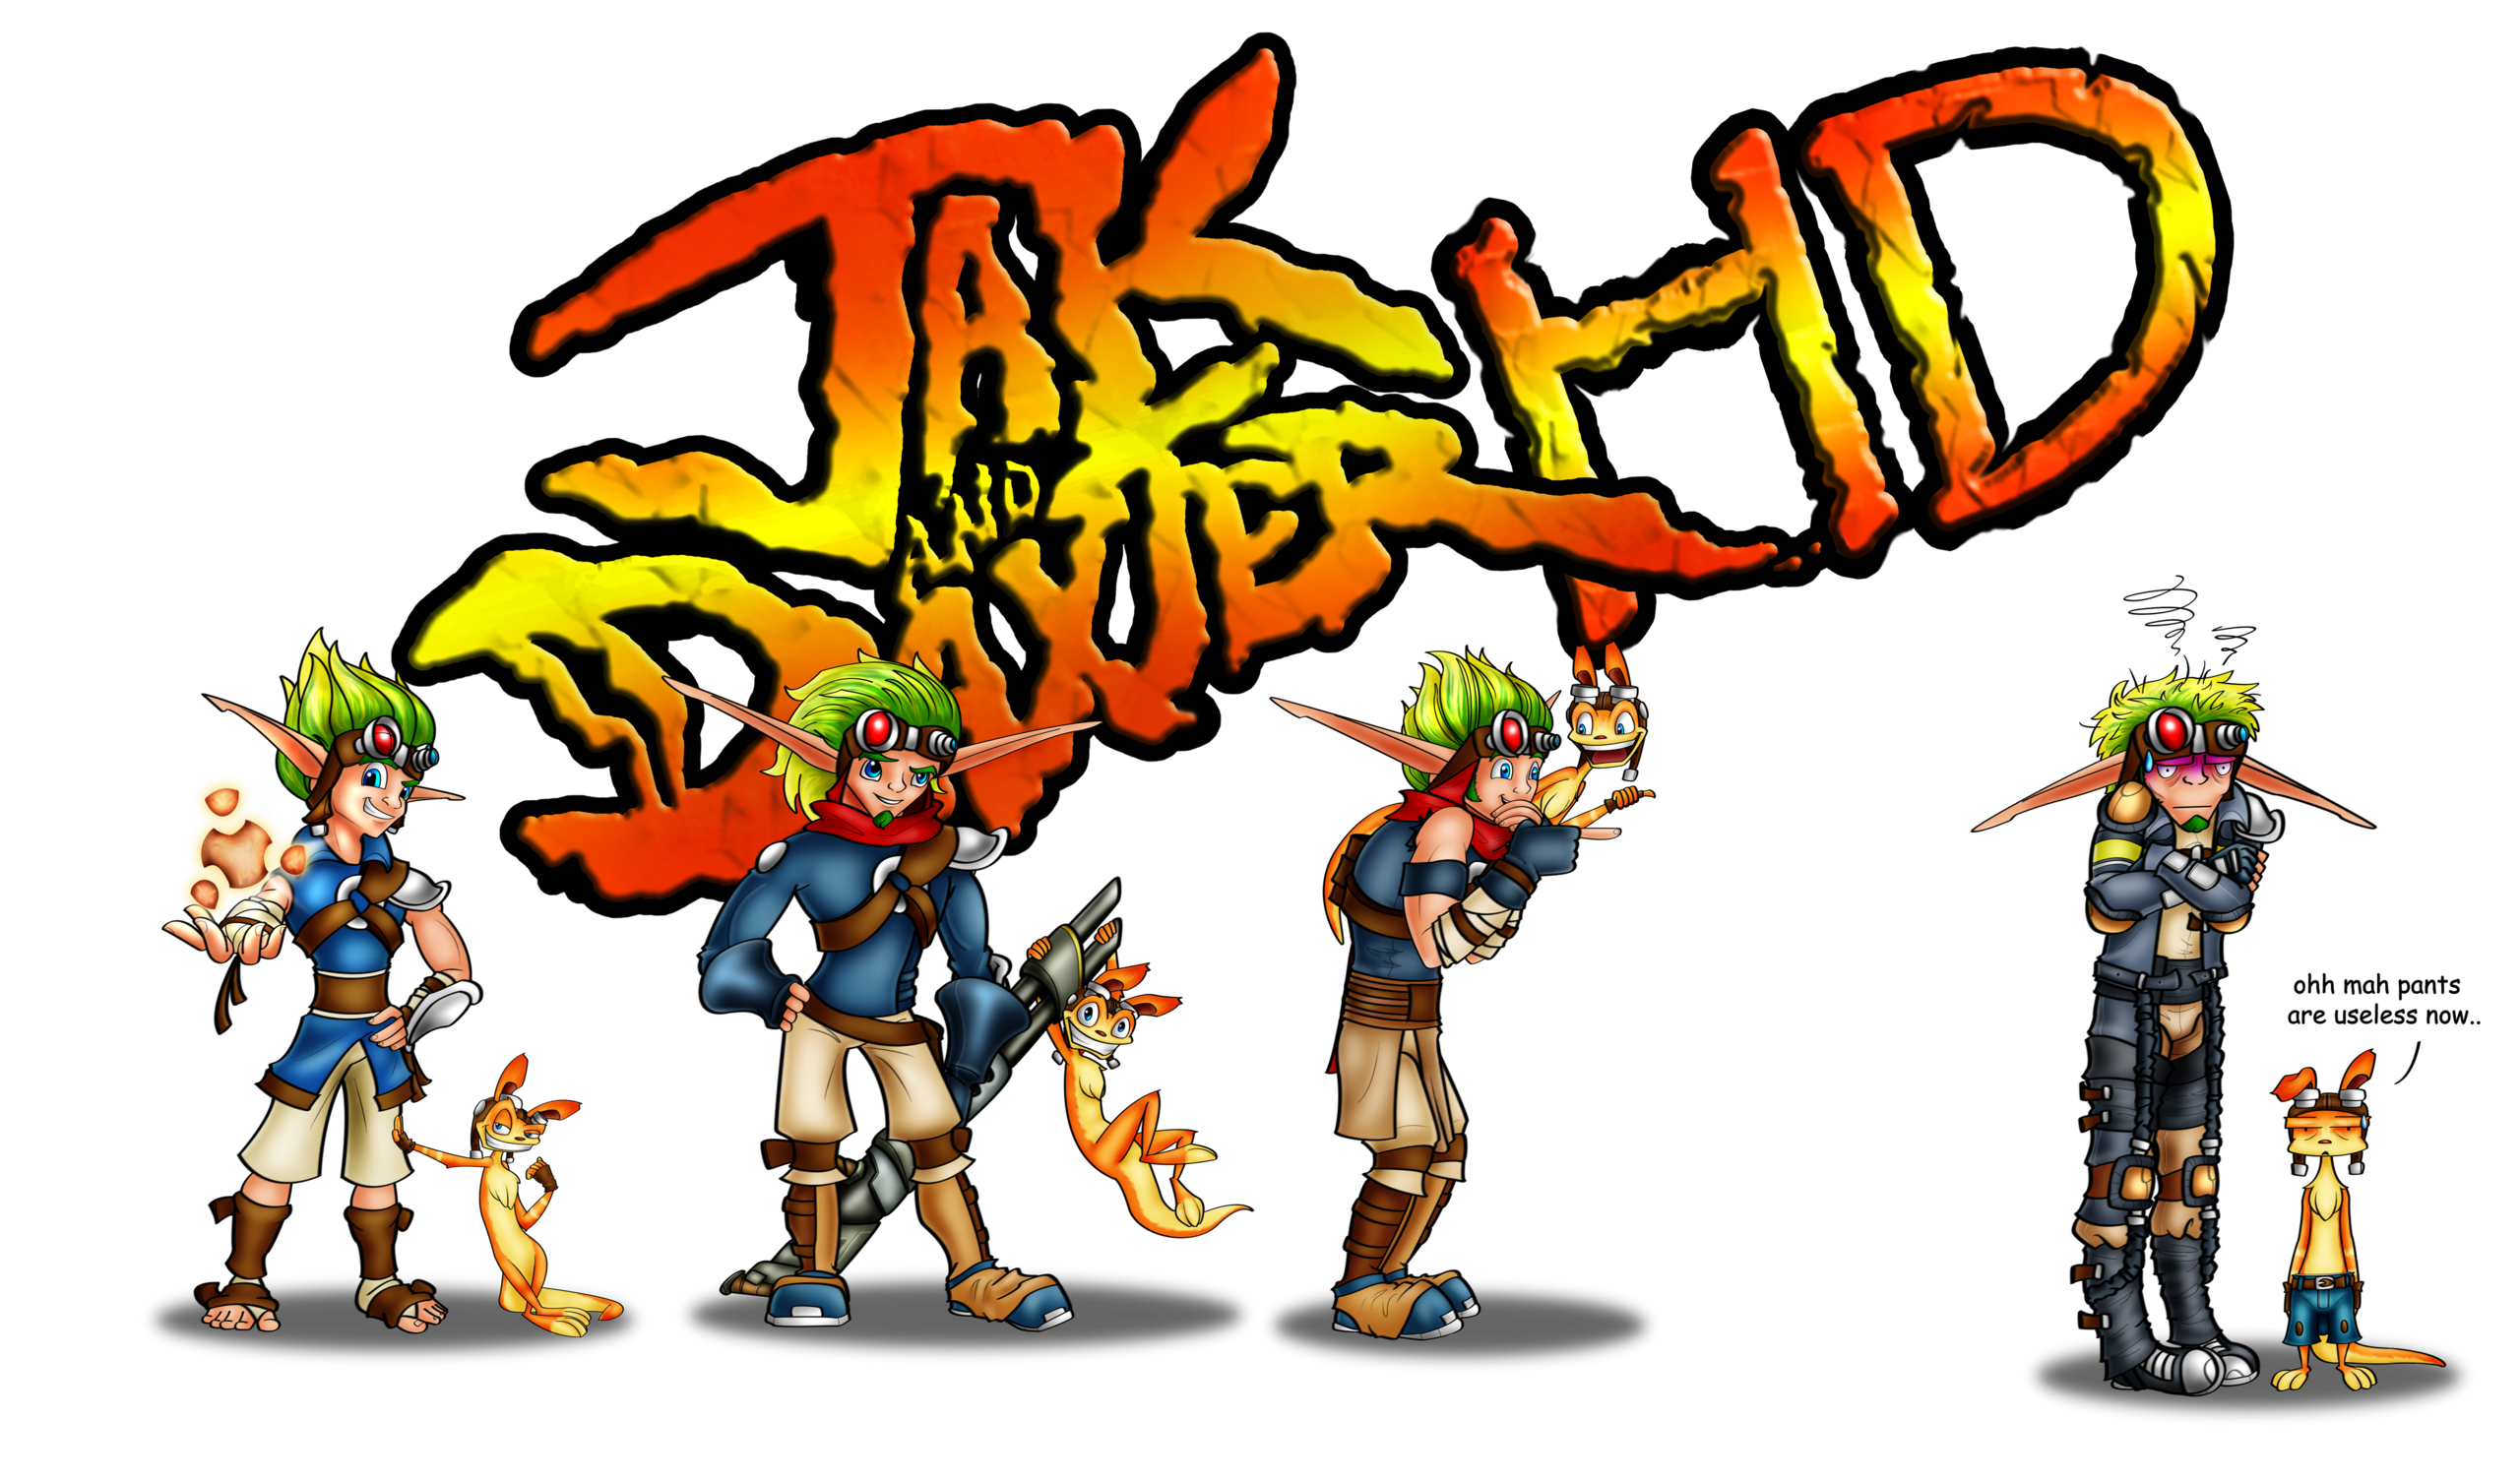 Jak and daxter clipart.